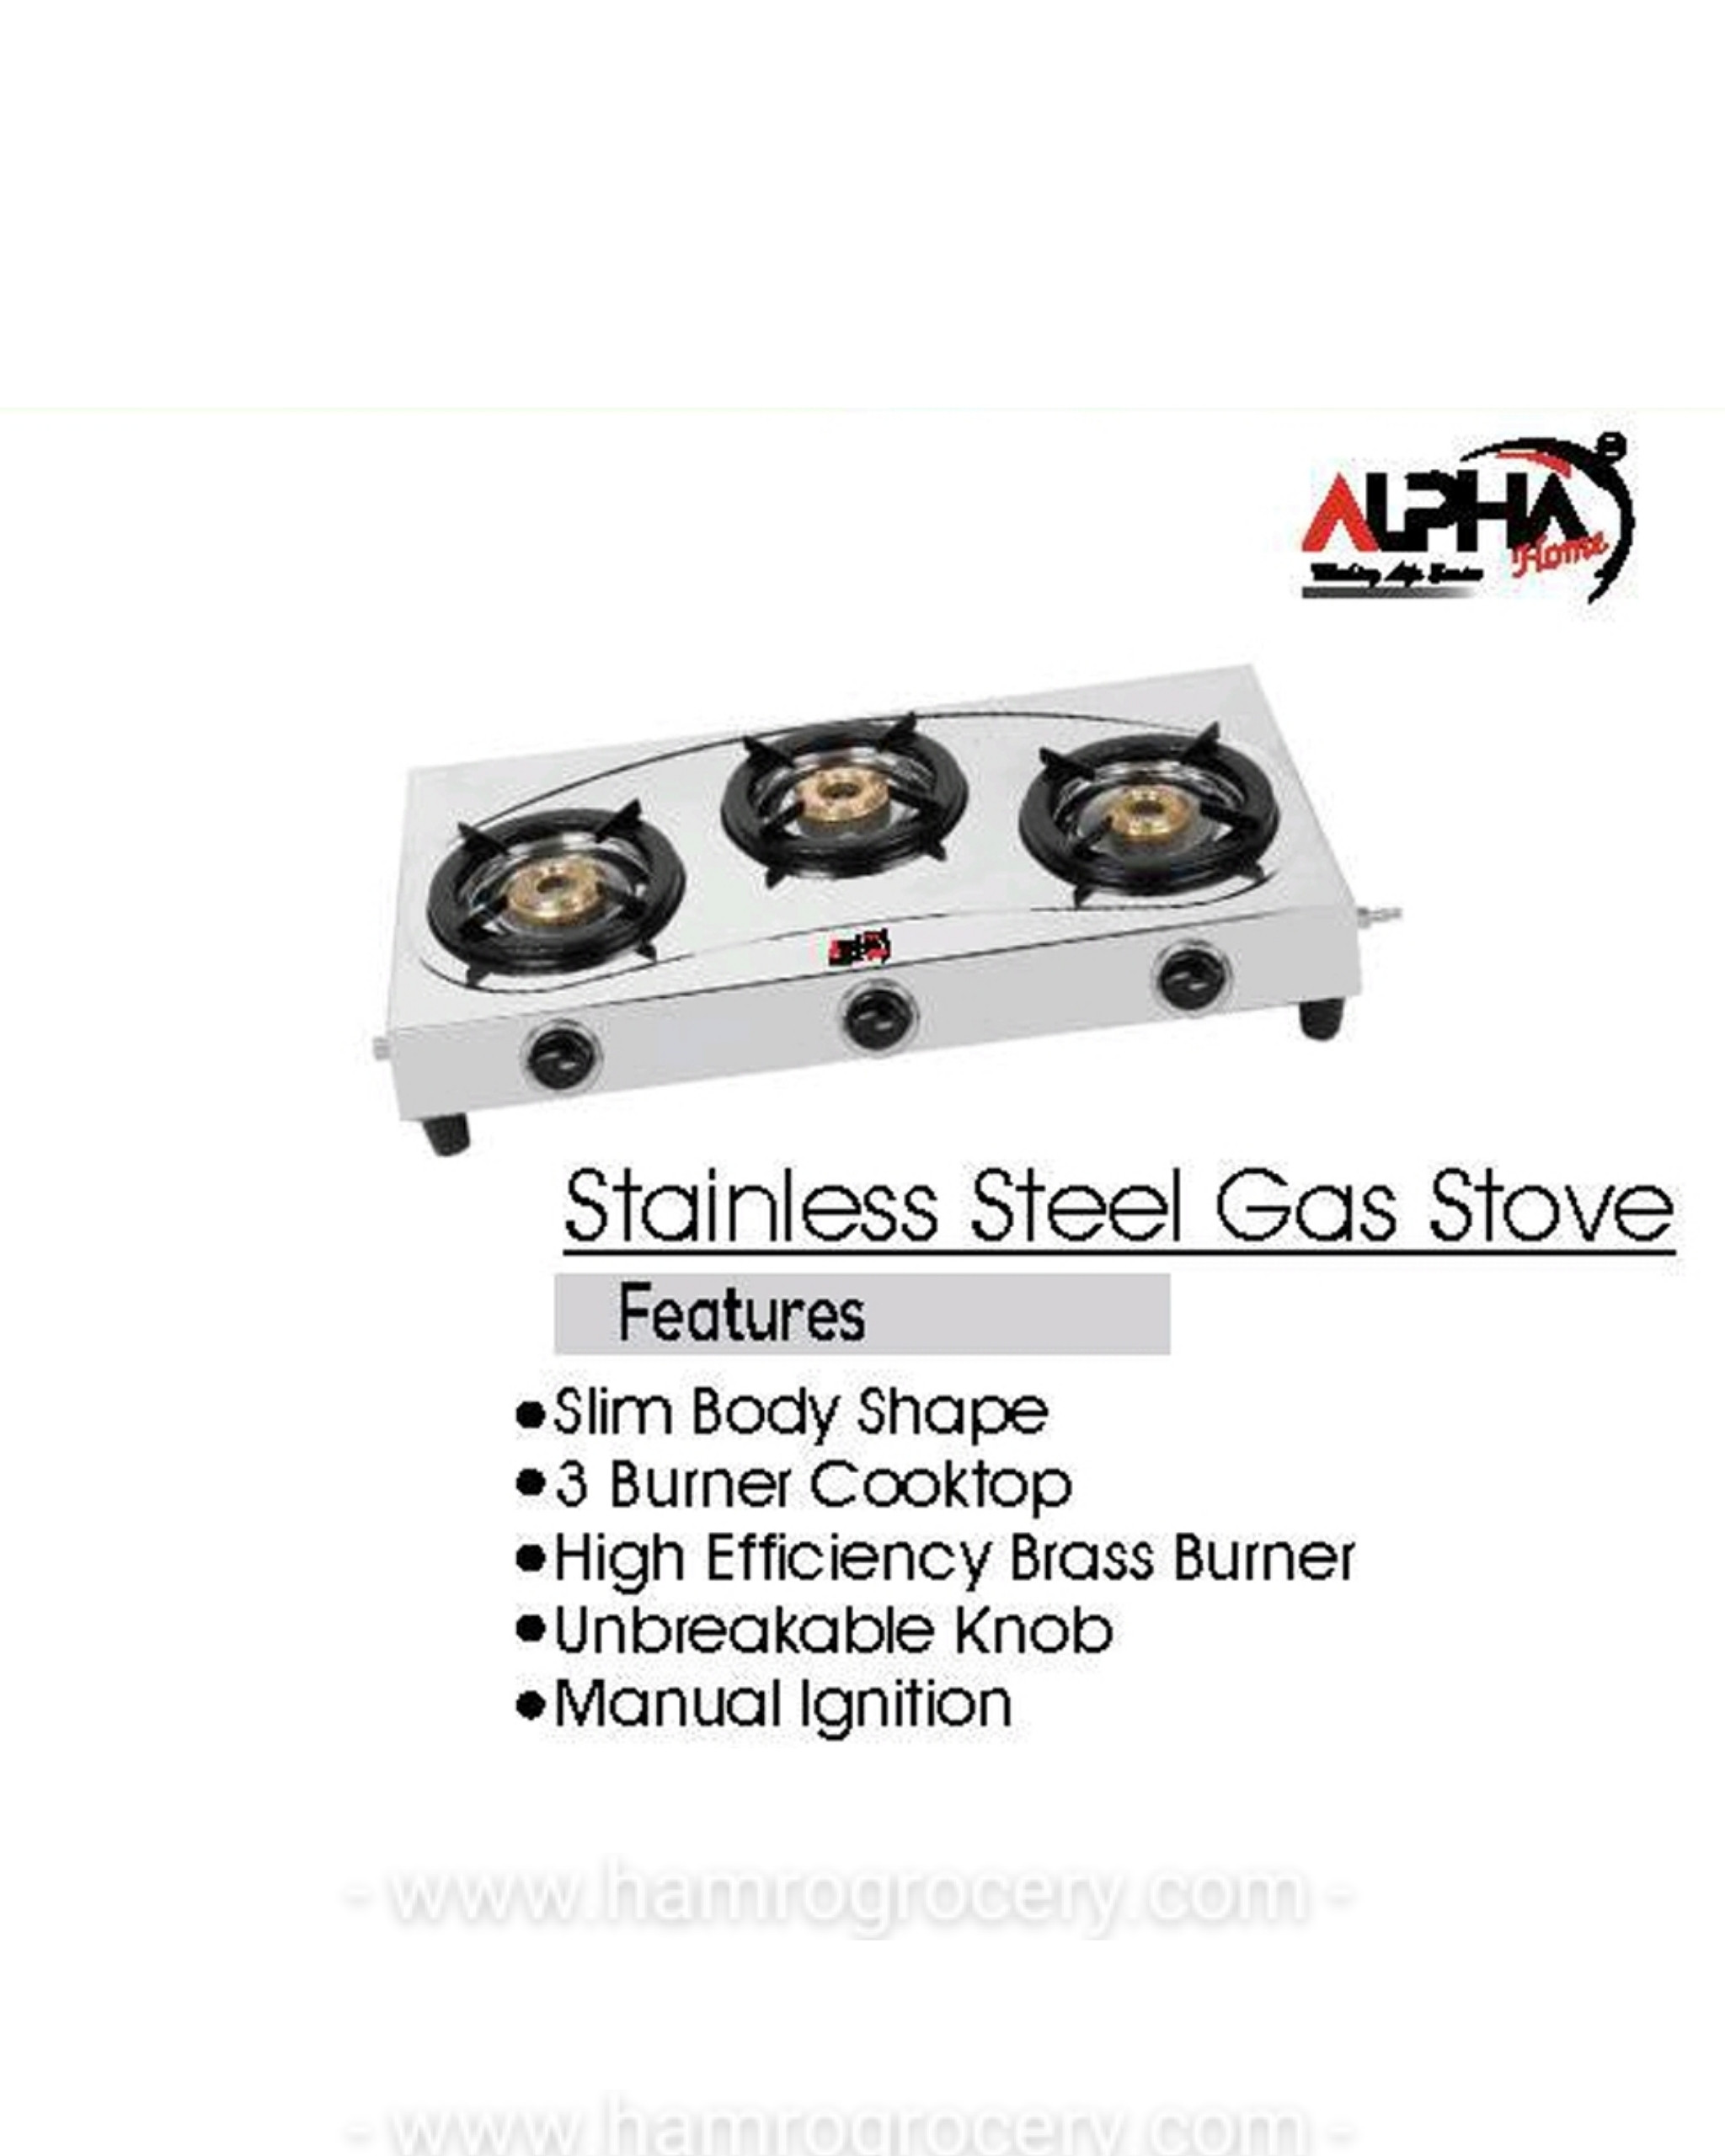 ALPHA L.P.G GAS STOVE STAINLESS STEEL GAS STOVE 3 BURNER MANUAL